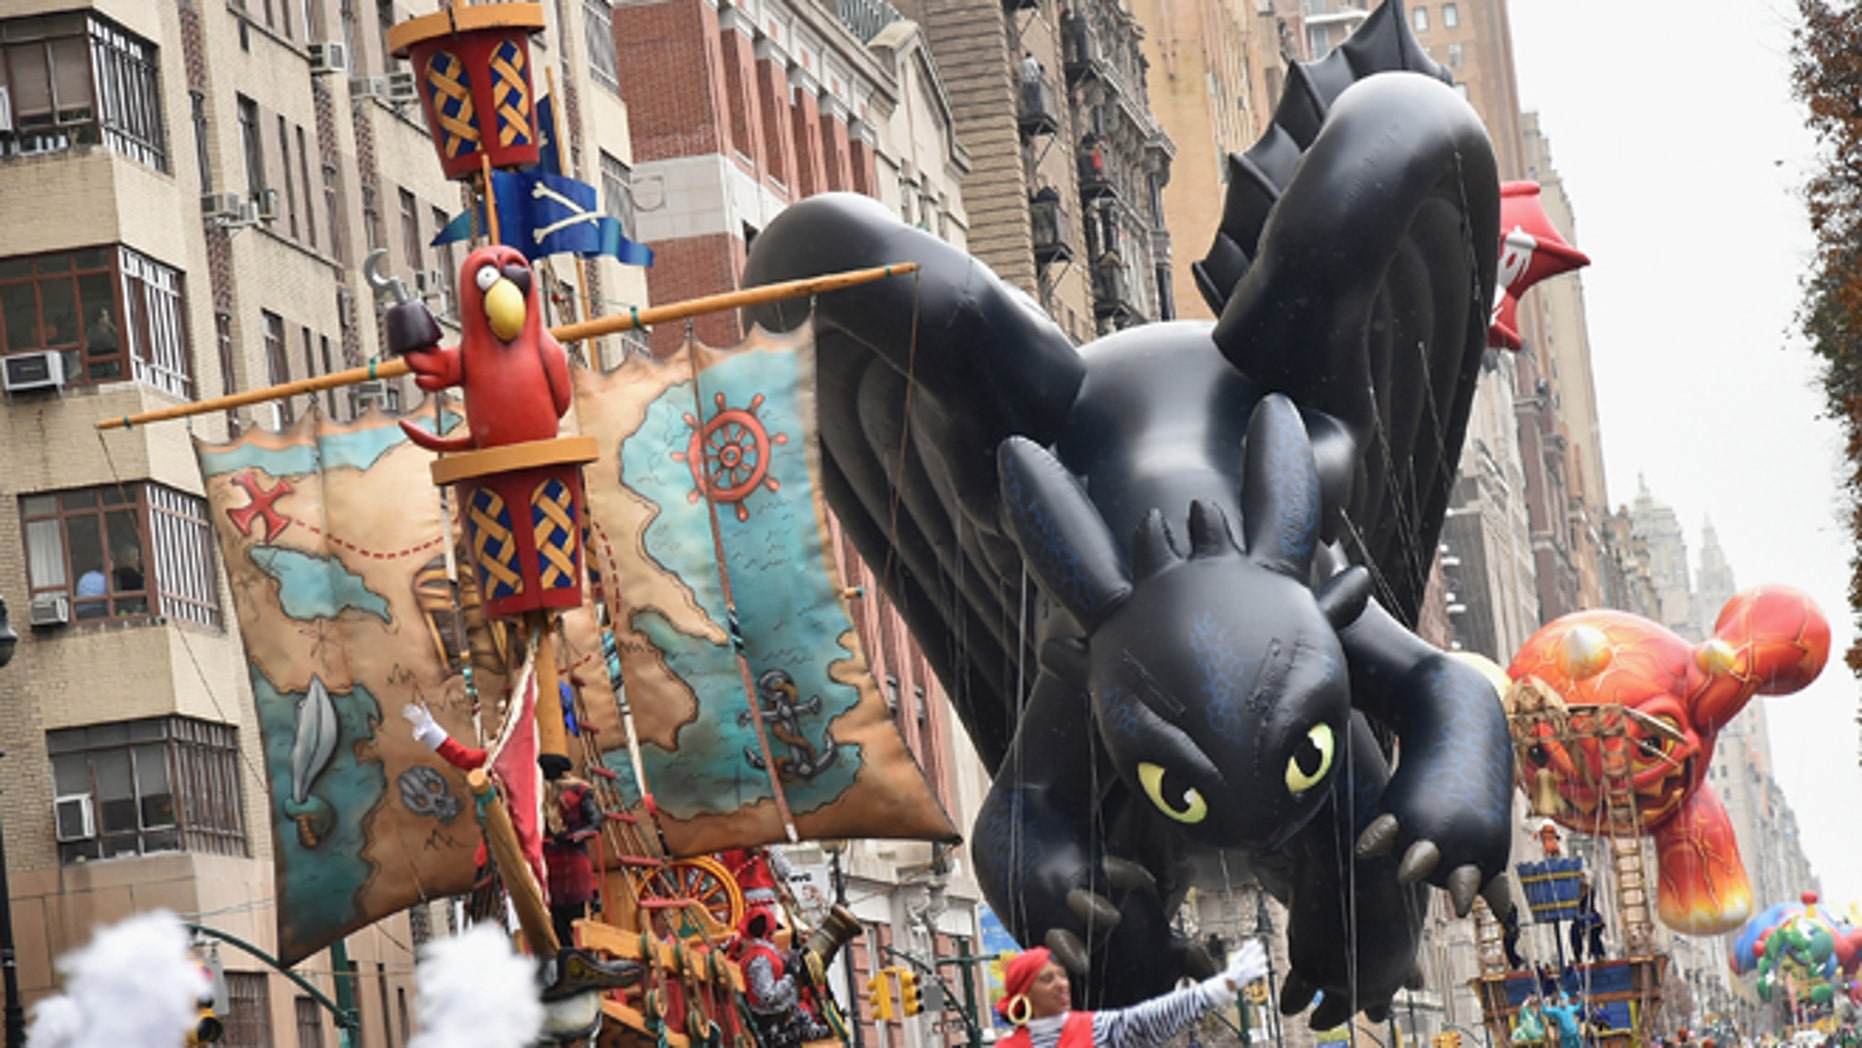 'Toothless' of How To Train Your Dragon balloon during last year's Thanksgiving Day Parade.